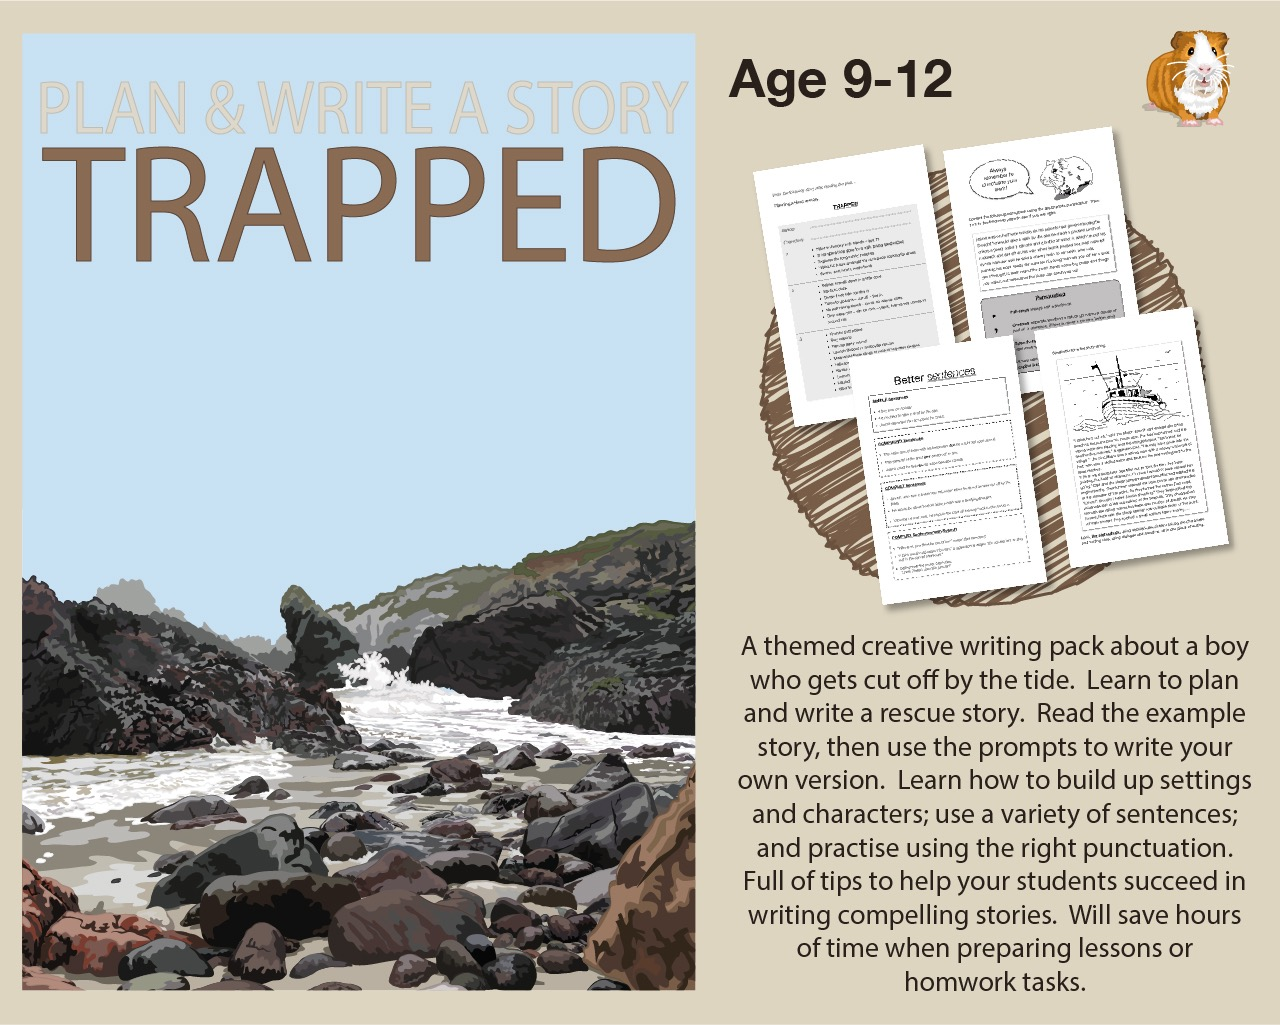 Plan And Write A Story Called 'Trapped' (9-12 years)